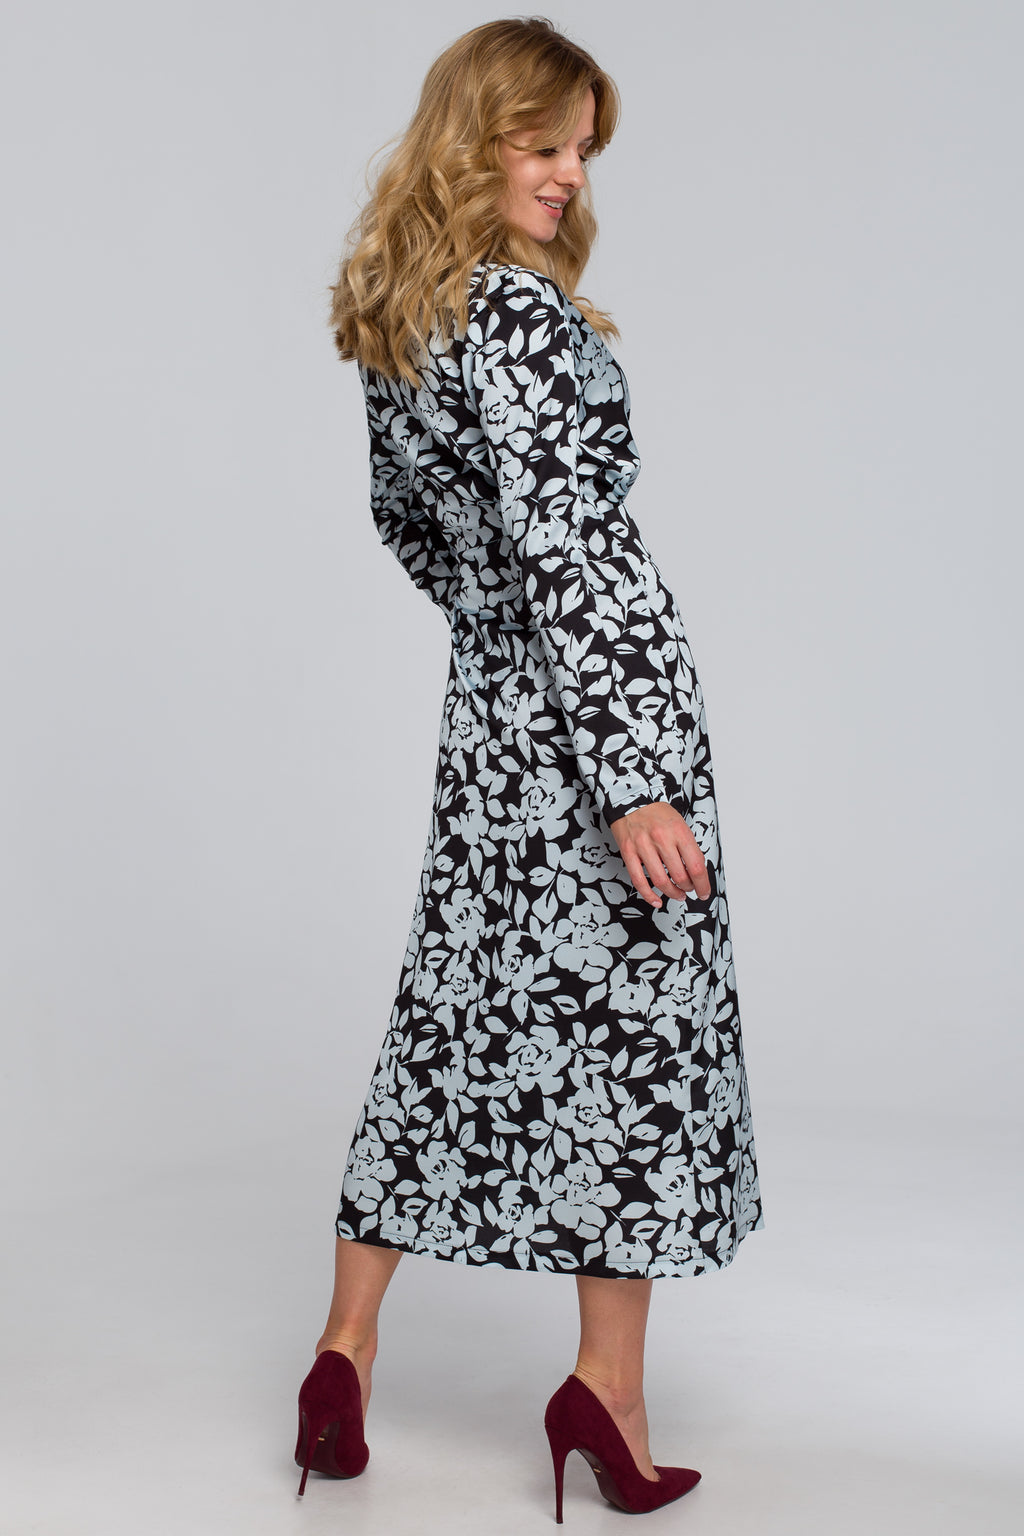 Black And White Floral Midi Wrap Dress - So Chic Boutique